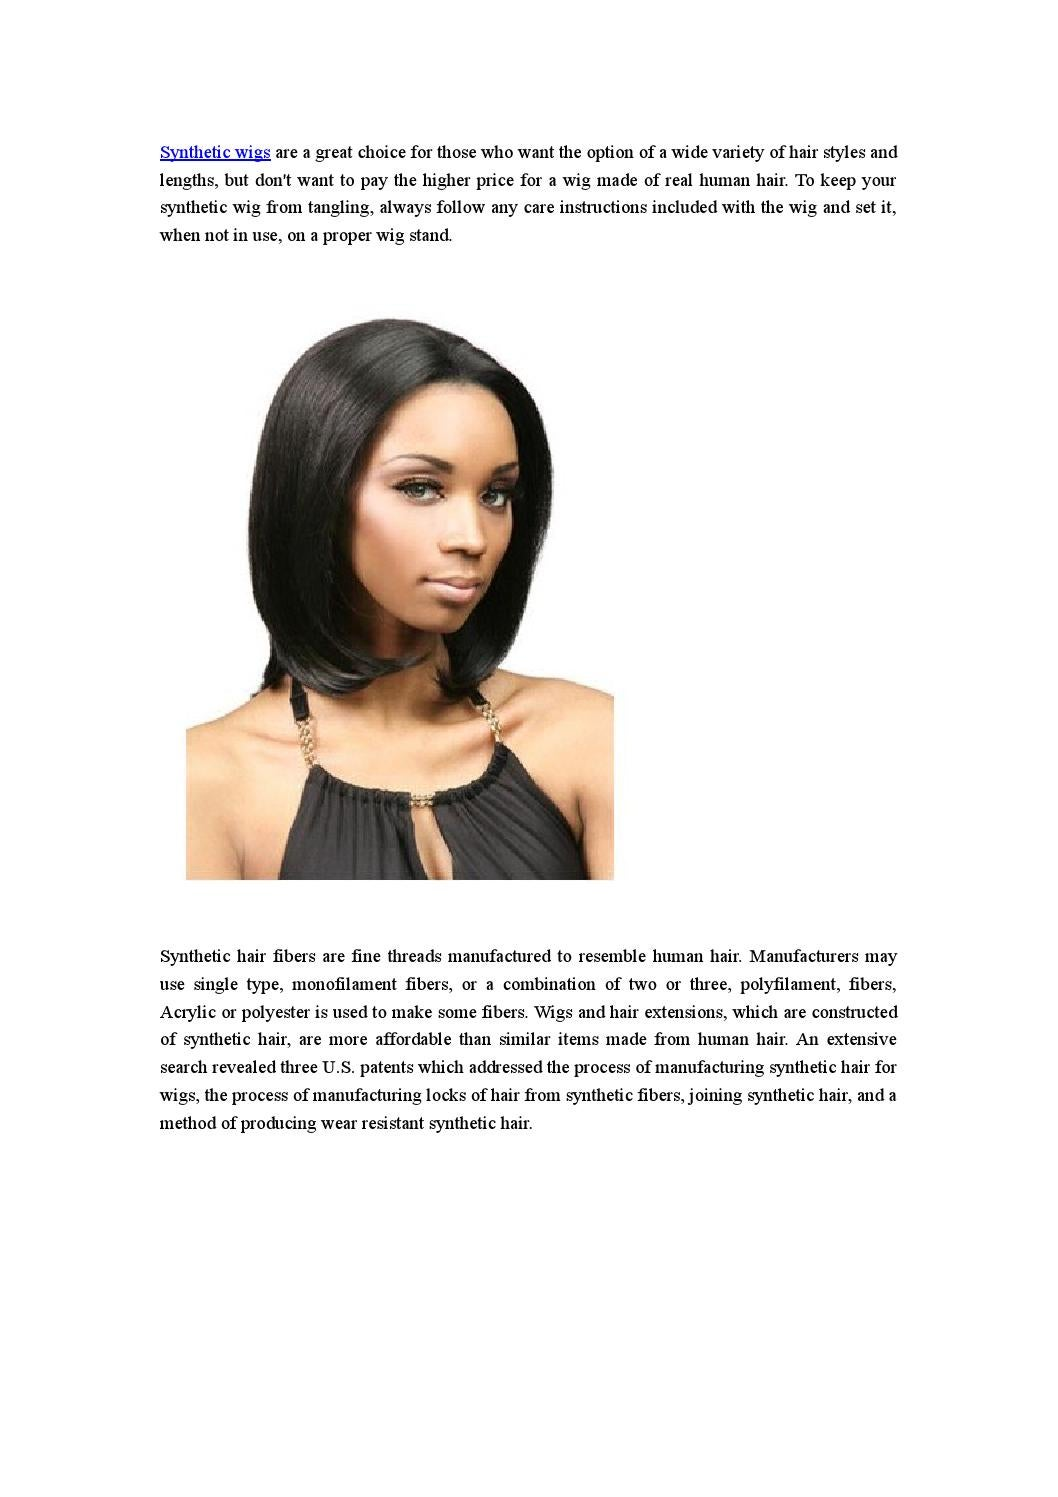 Synthetic Wigs By Sherry280 Issuu